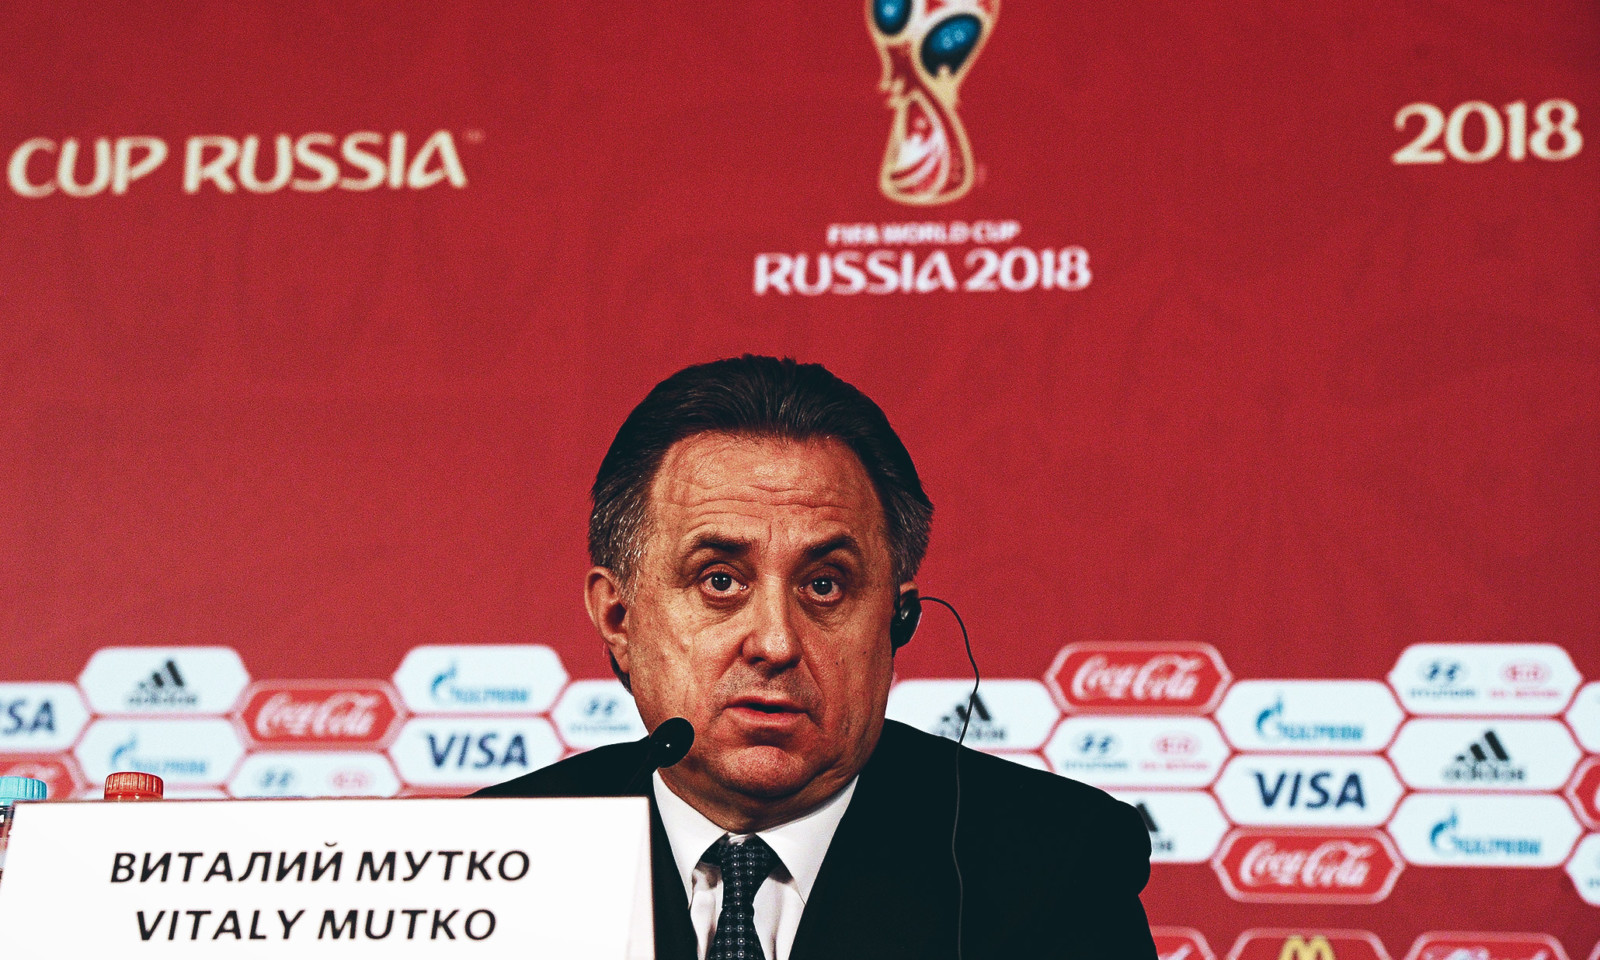 Vitaly Mutko commented on reports that Fabio Capello will be fired 06/16/2015 36